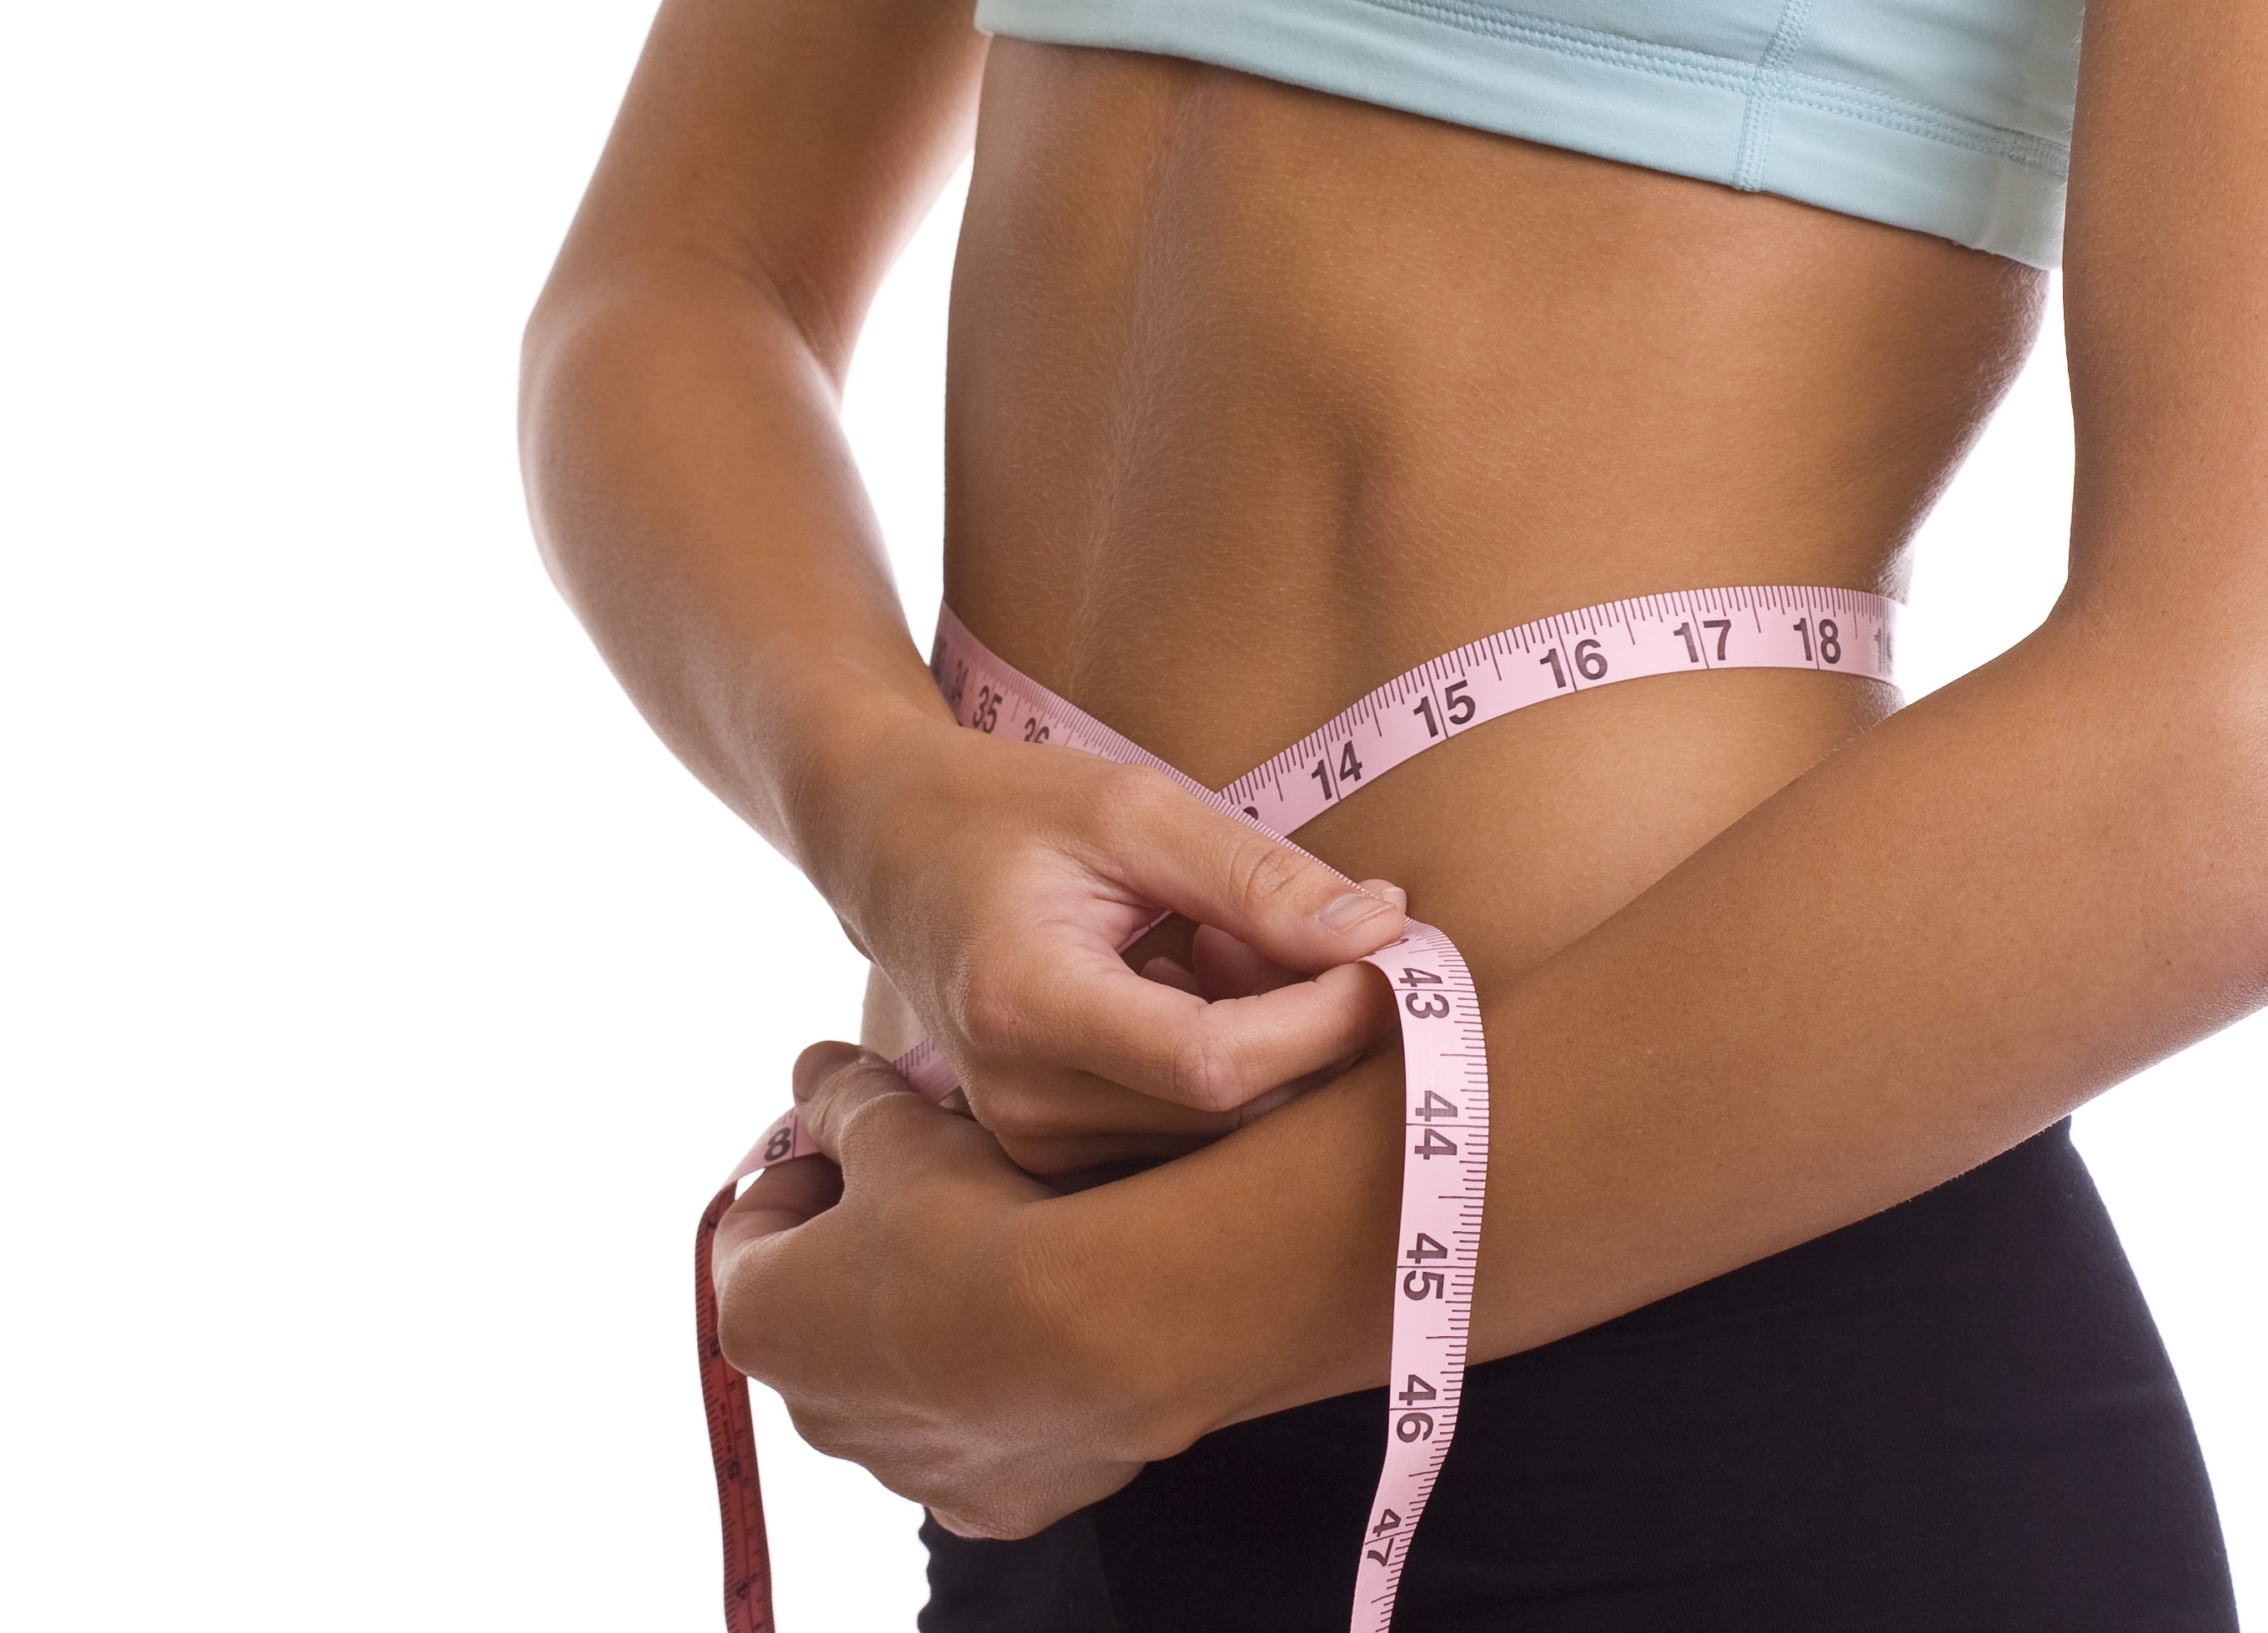 A thin woman measures her exposed waist with a flexible tape measure calibrated in inches.